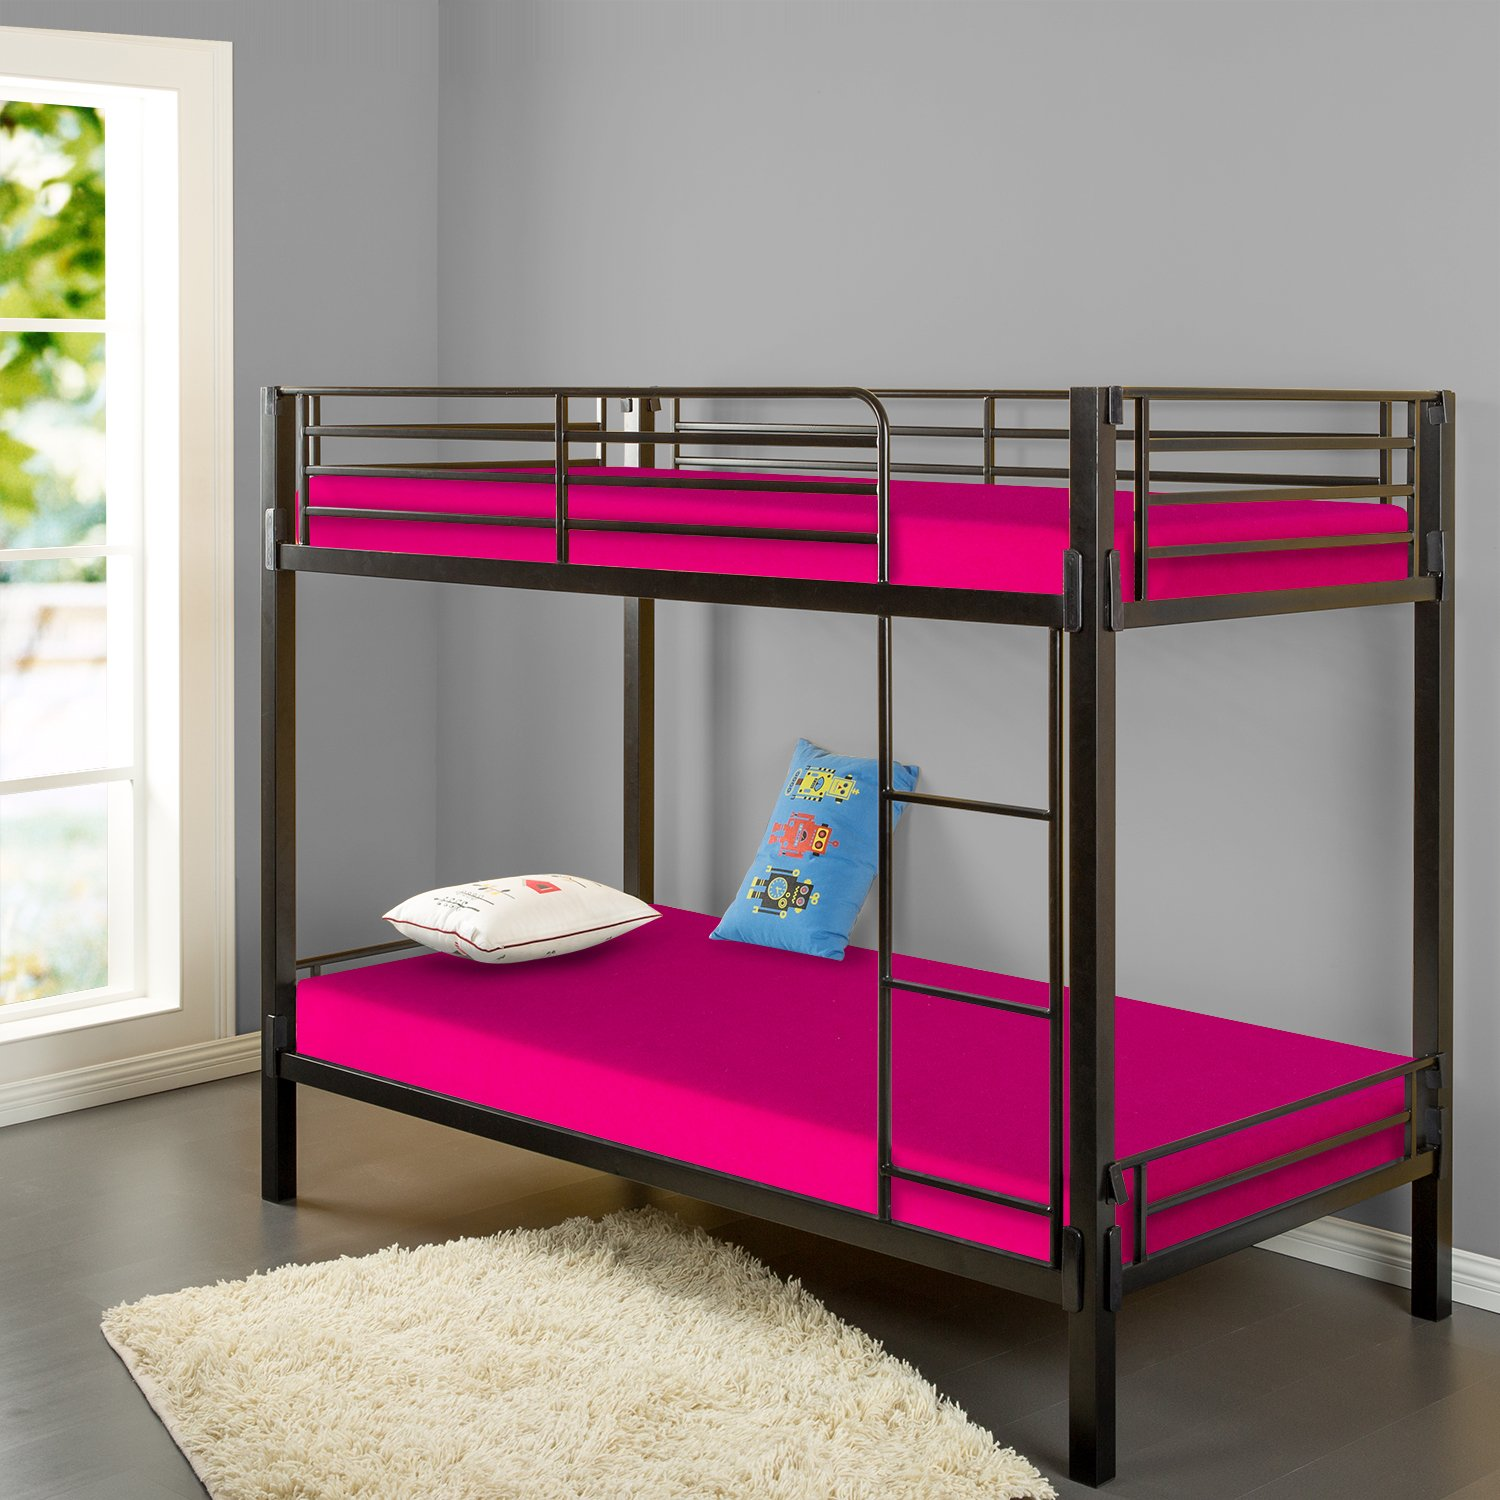 Amazon.com: Zinus Sleep Master Memory Foam 5 Inch Bunk Bed / Trundle Bed /  Day Bed / Mattress, Twin, Pink: Kitchen & Dining